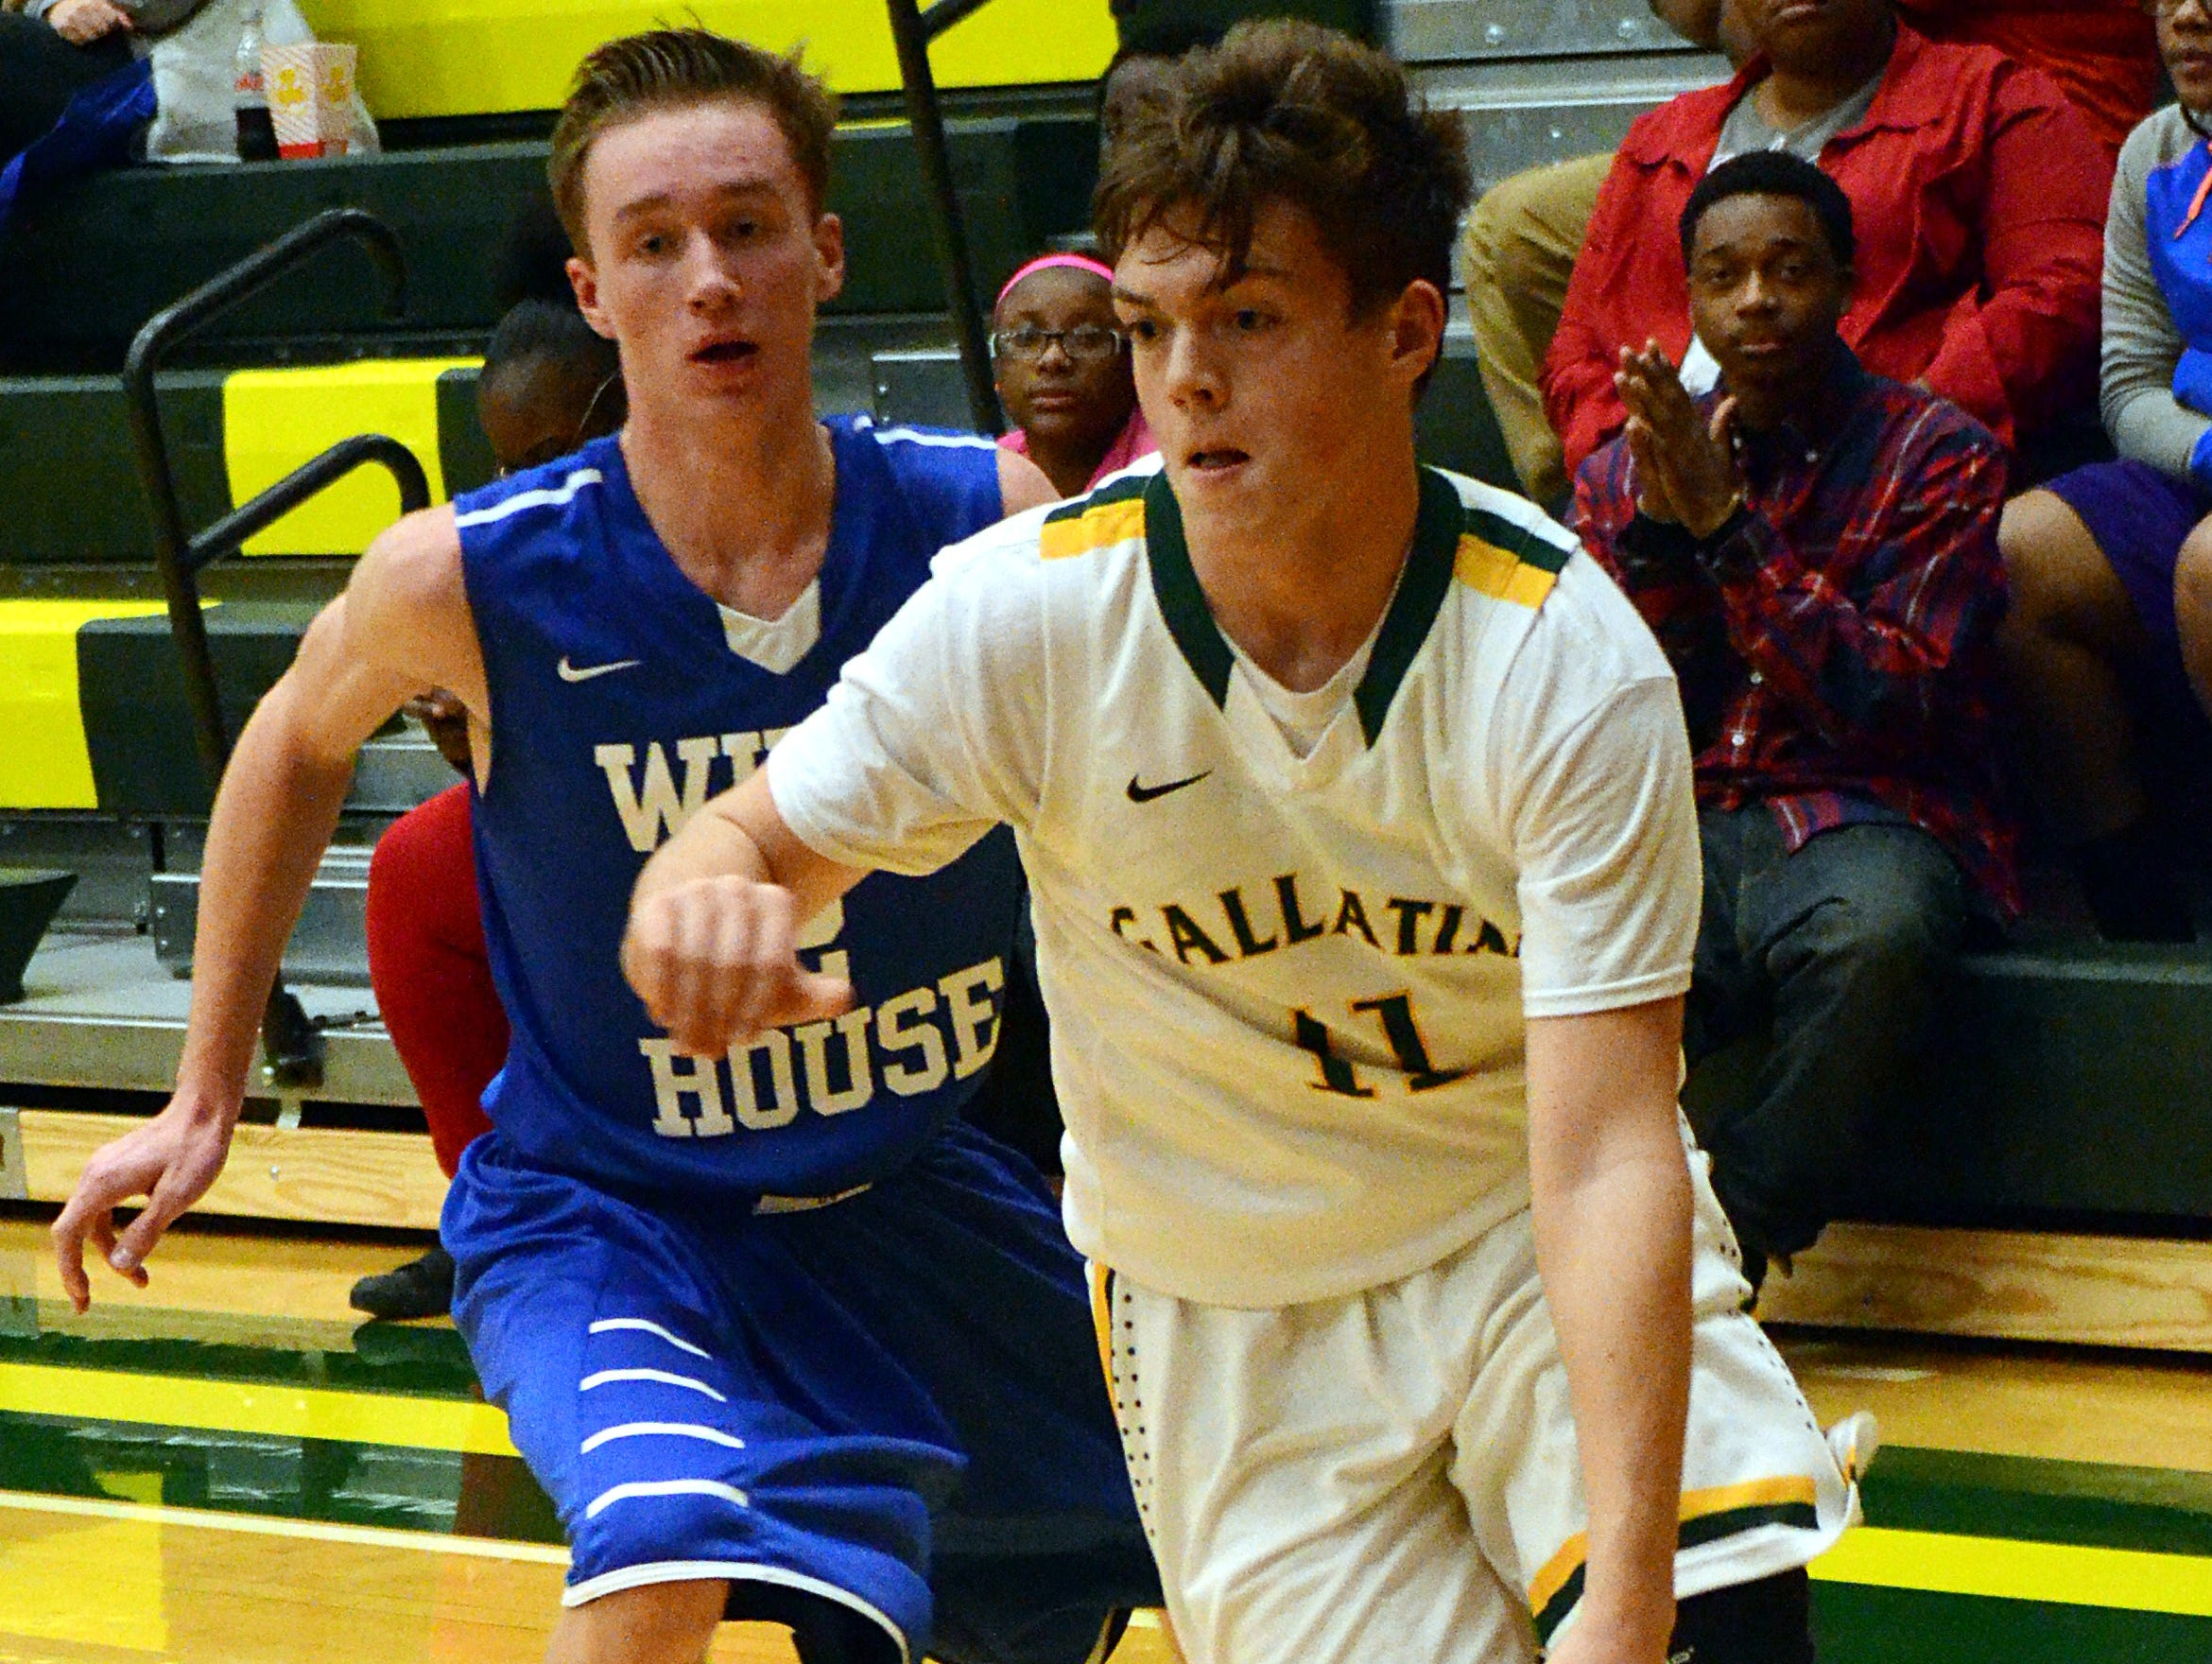 Gallatin High sophomore guard Collin Minor dribbles to the basket during second-quarter action as White House freshman Jared Ward pursues. Minor scored 12 points in the Green Wave's 66-65 victory on Monday evening.